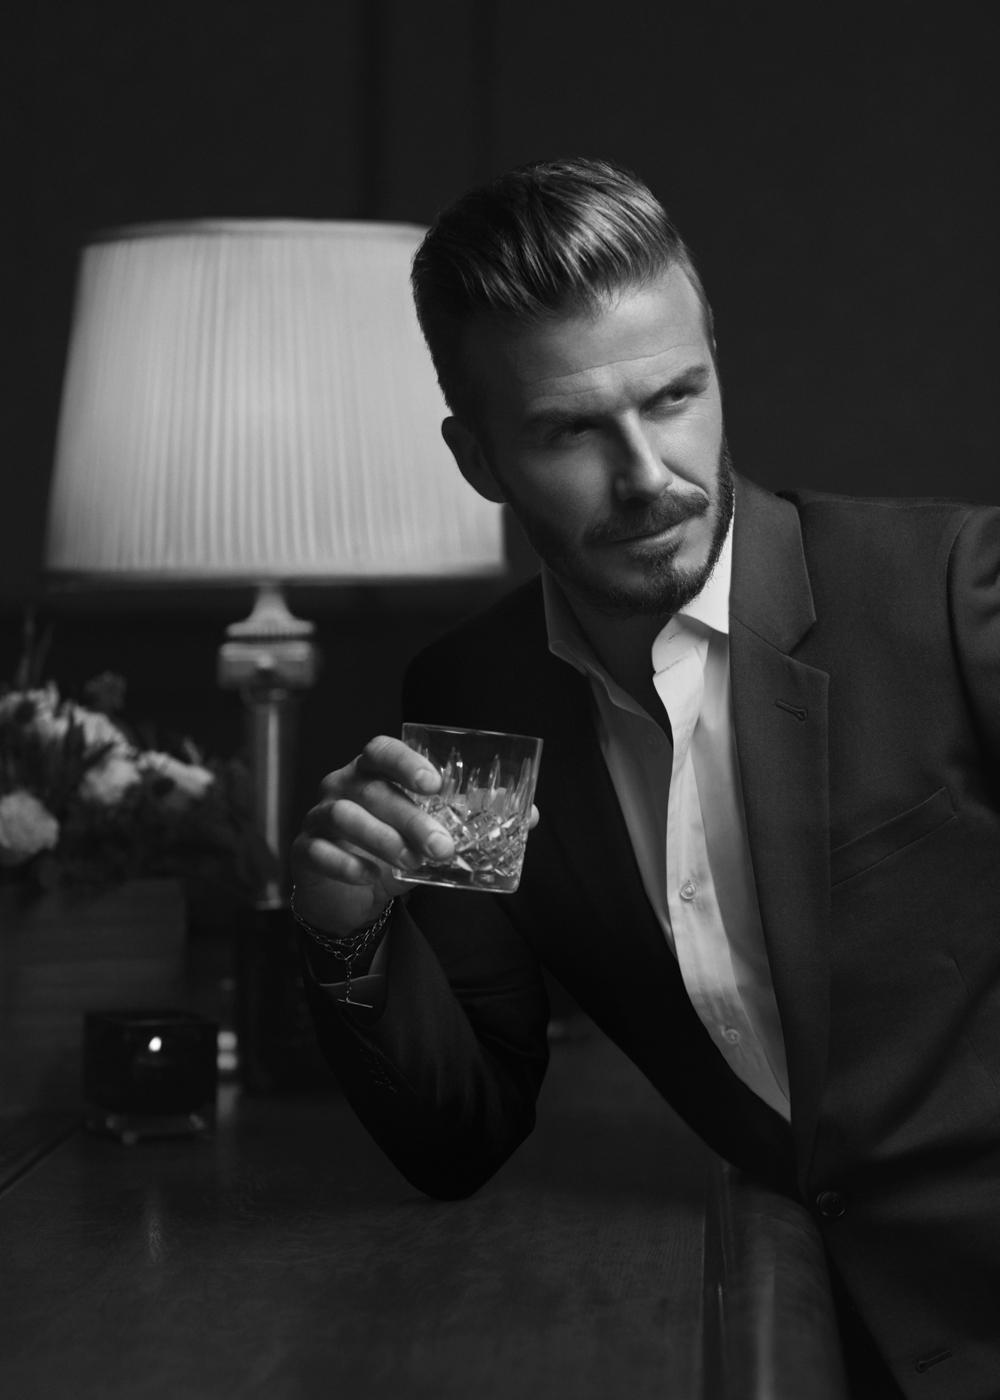 I recently flew to LA to photograph David Beckham for the US launch of Haig Club Whisky.